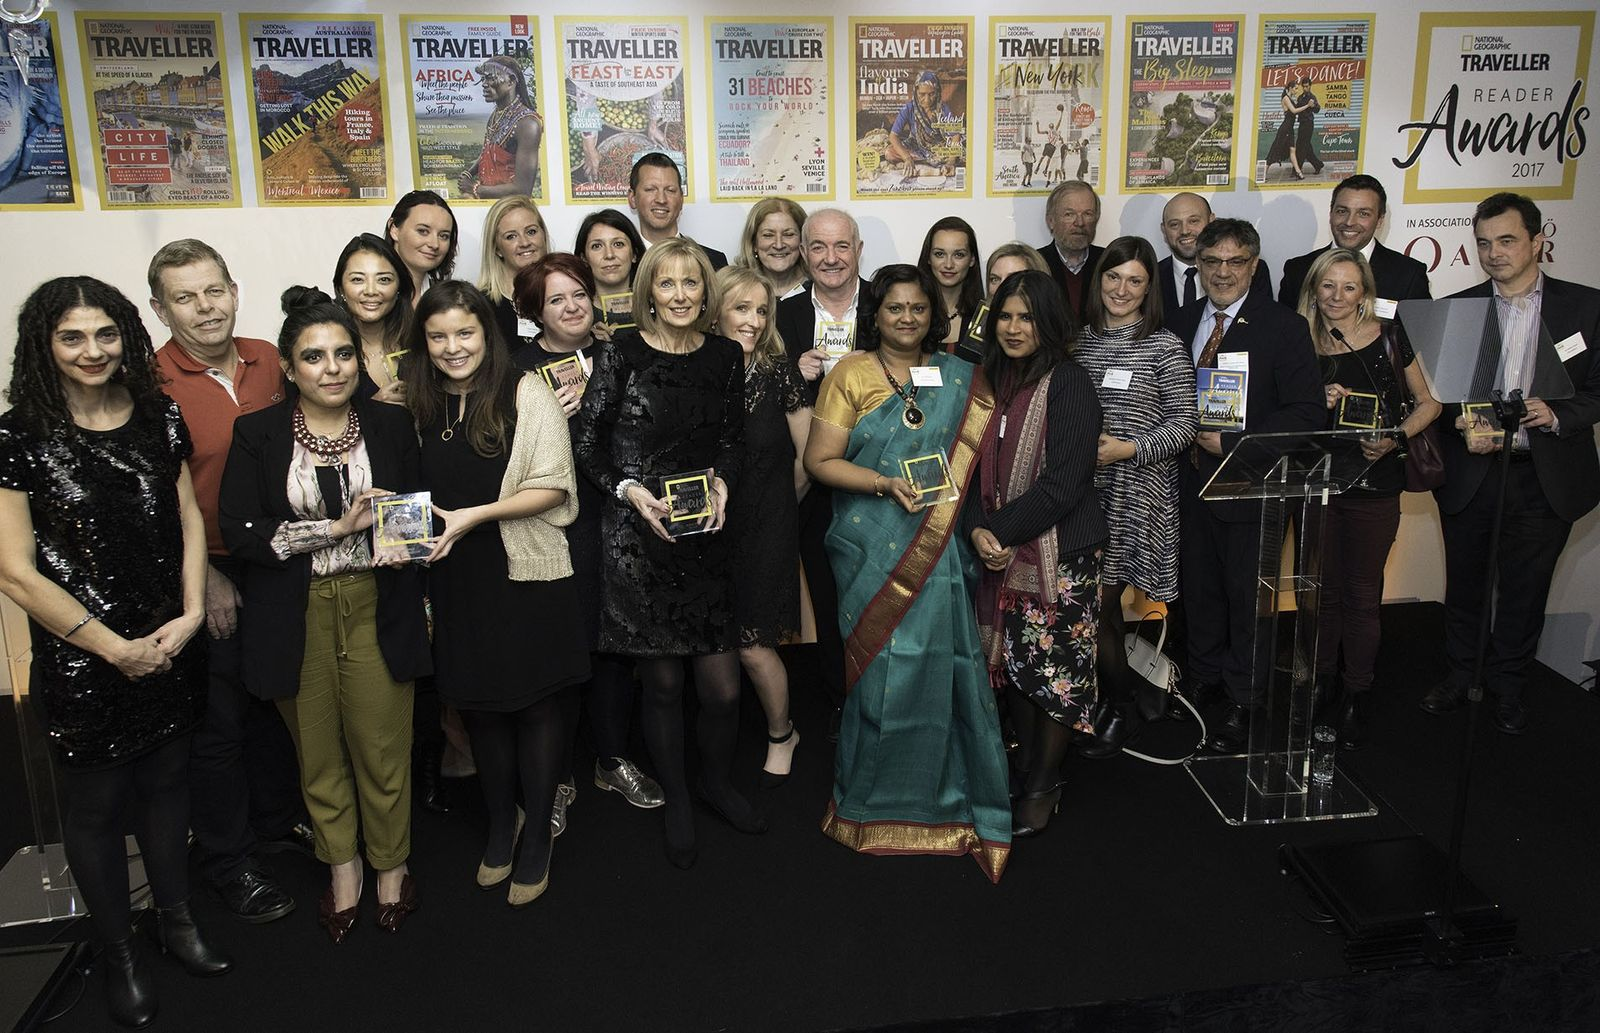 National Geographic Traveller Reader Awards Winners 2017